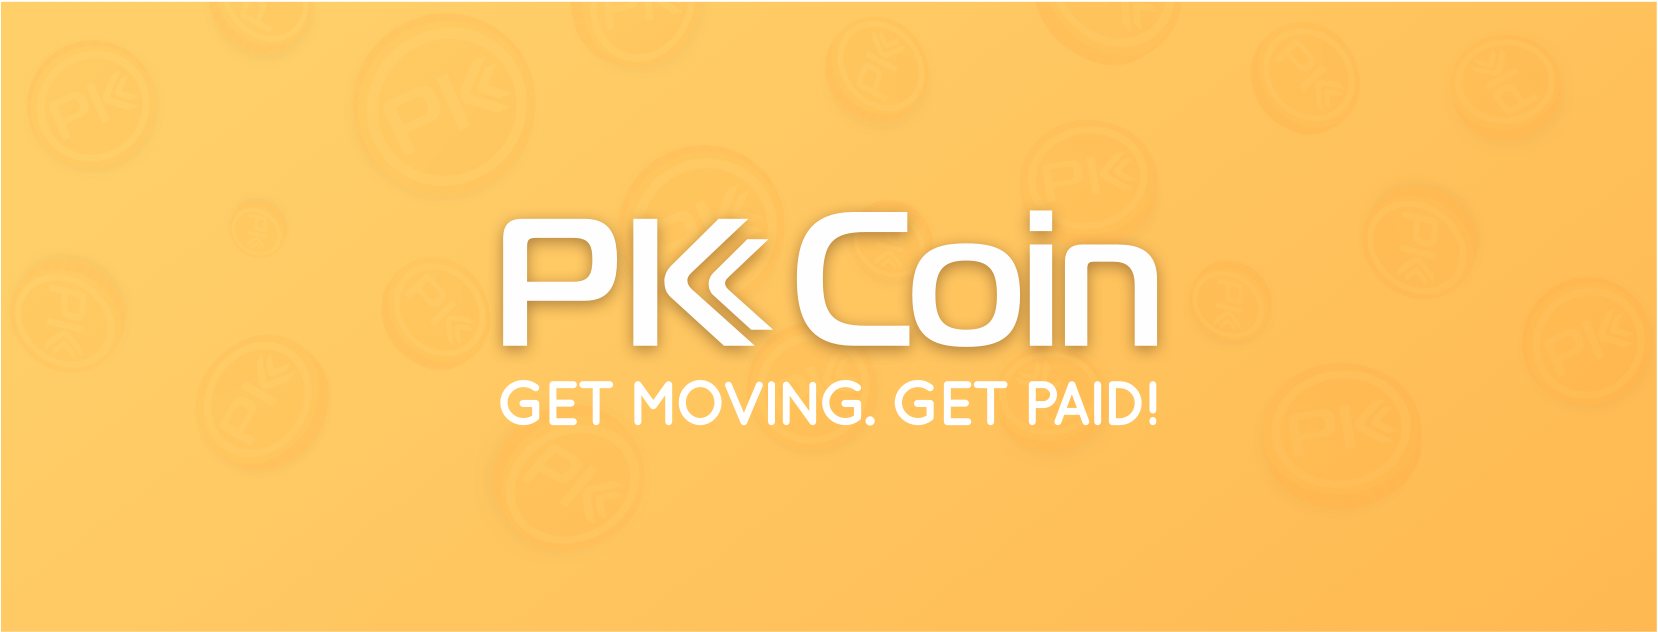 pkcoin_getmovinggetpaid2.png